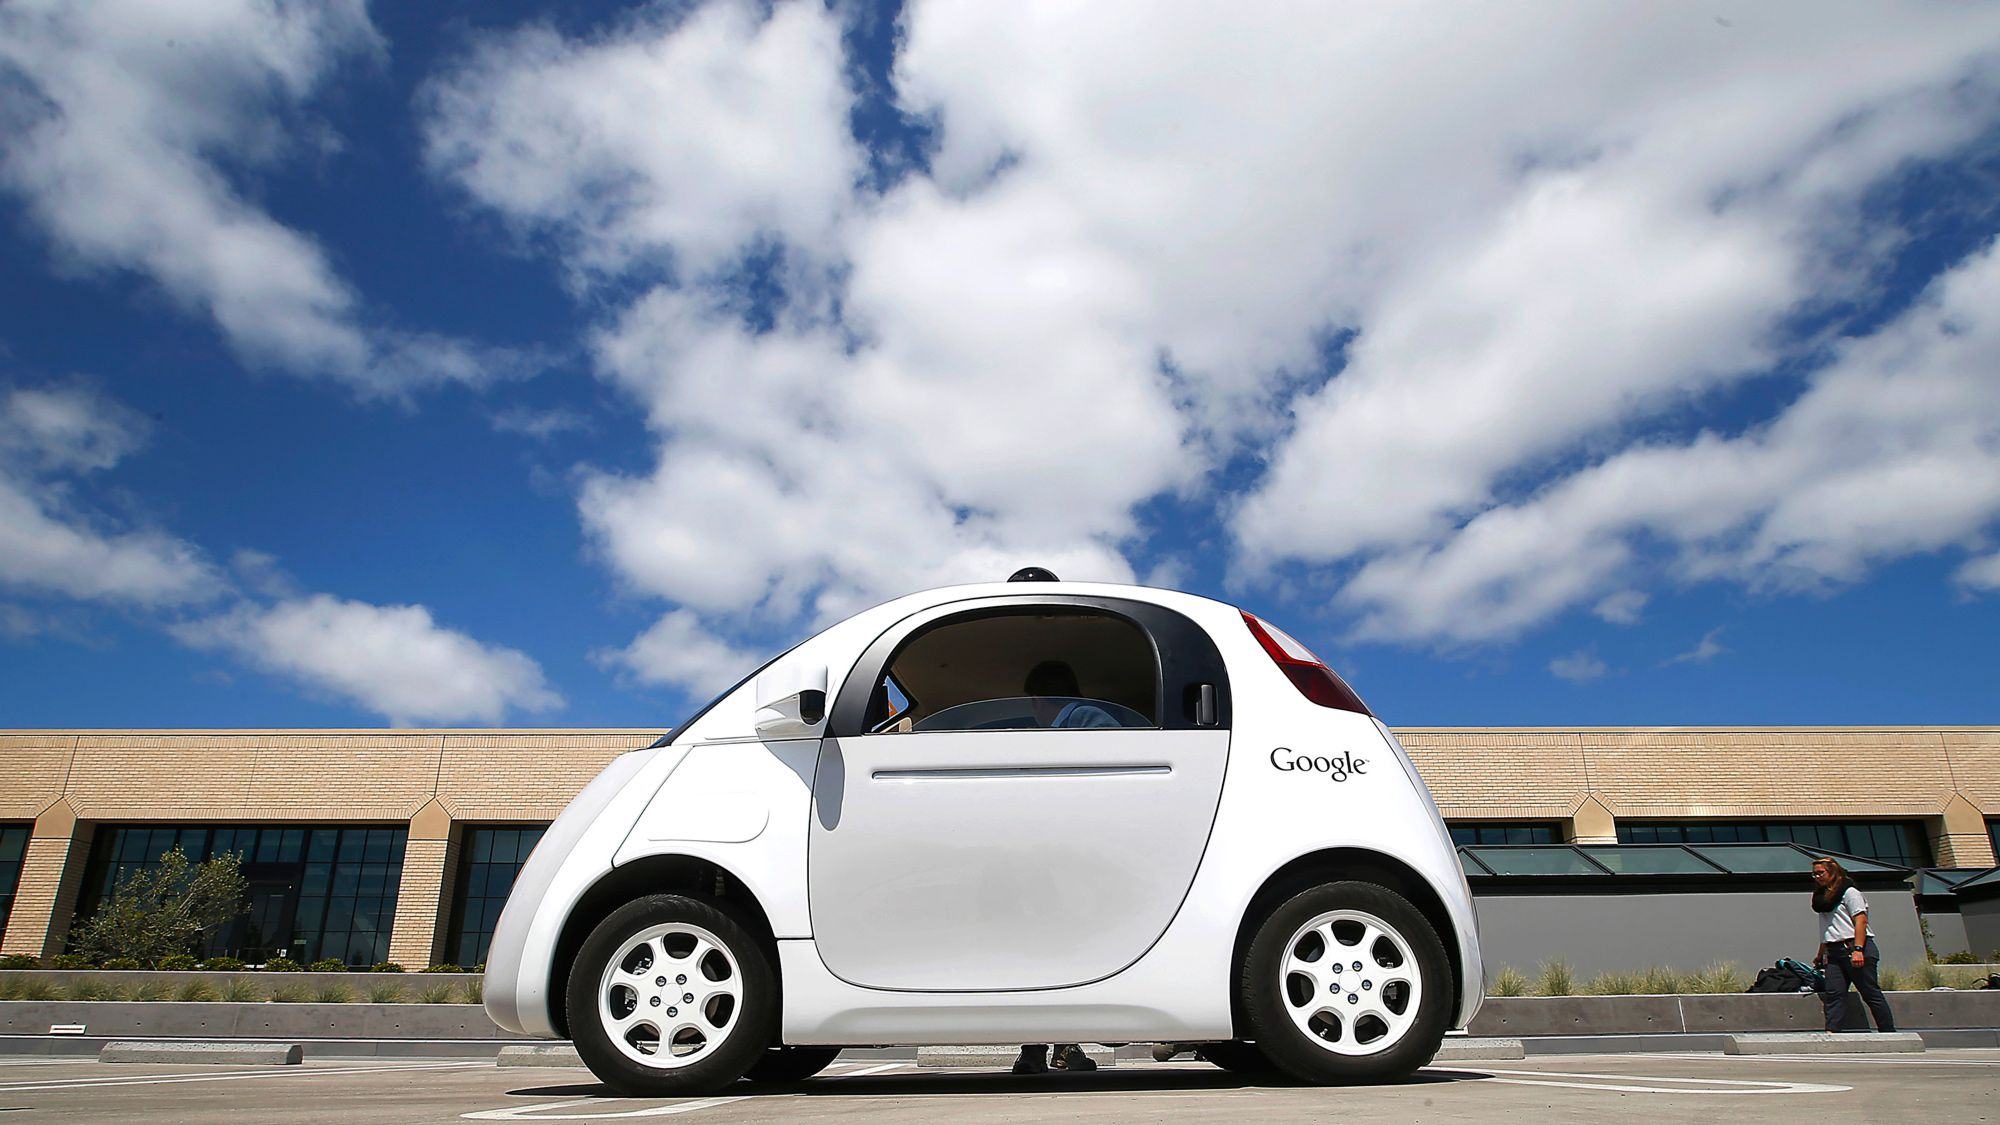 Self-driving cars are a myriad ethical quandaries on wheels.